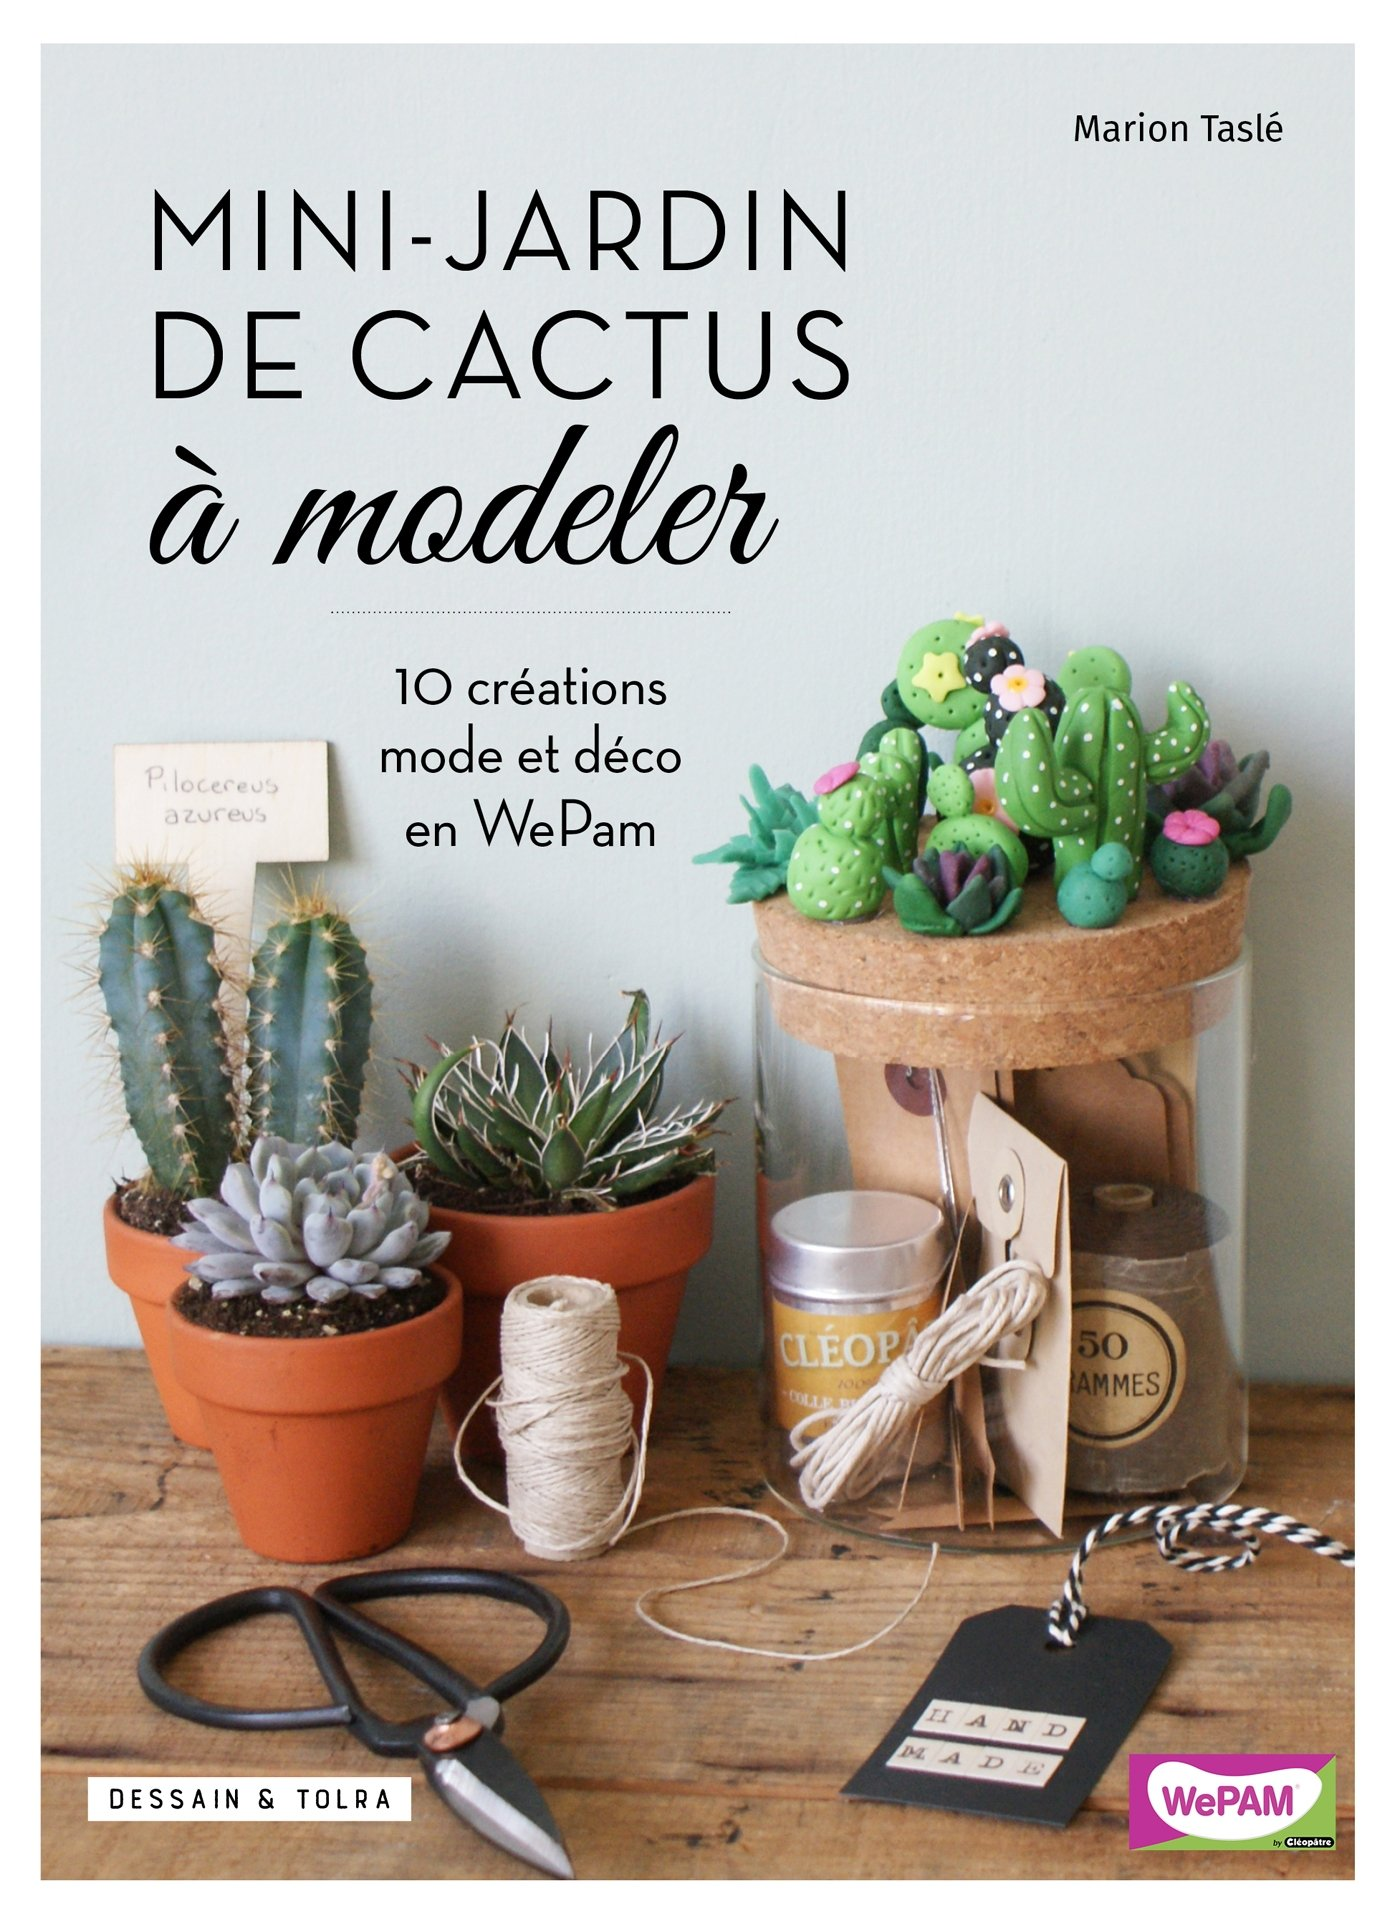 Mini-jardin de cactus à modeler Hors Collection - DIY: Amazon.es: Taslé, Marion: Libros en idiomas extranjeros